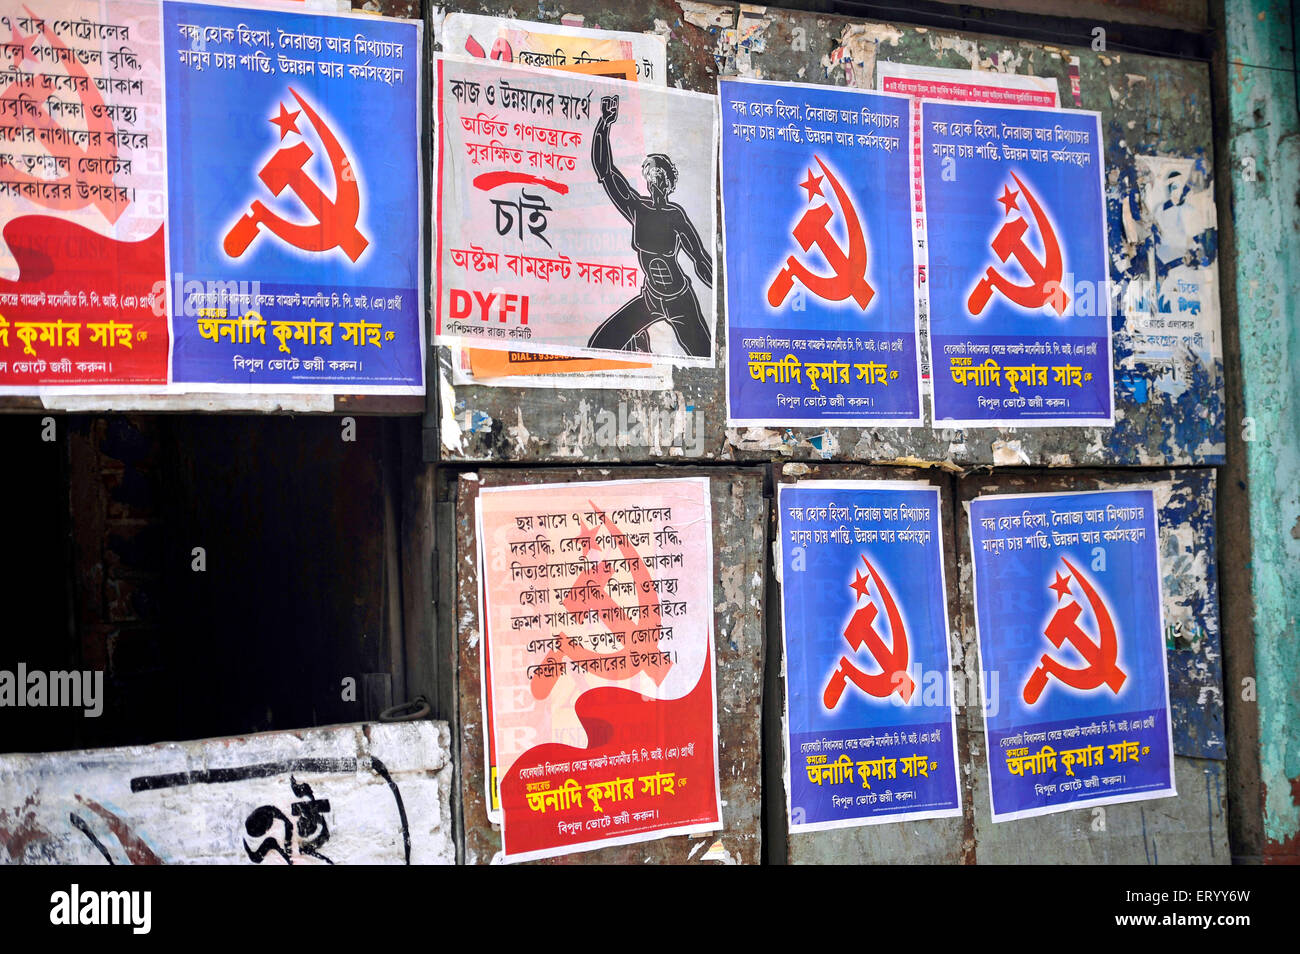 Posters of a Communist Party Marxists CPM with party symbol on the wall of a locality in Kolkata India - Stock Image